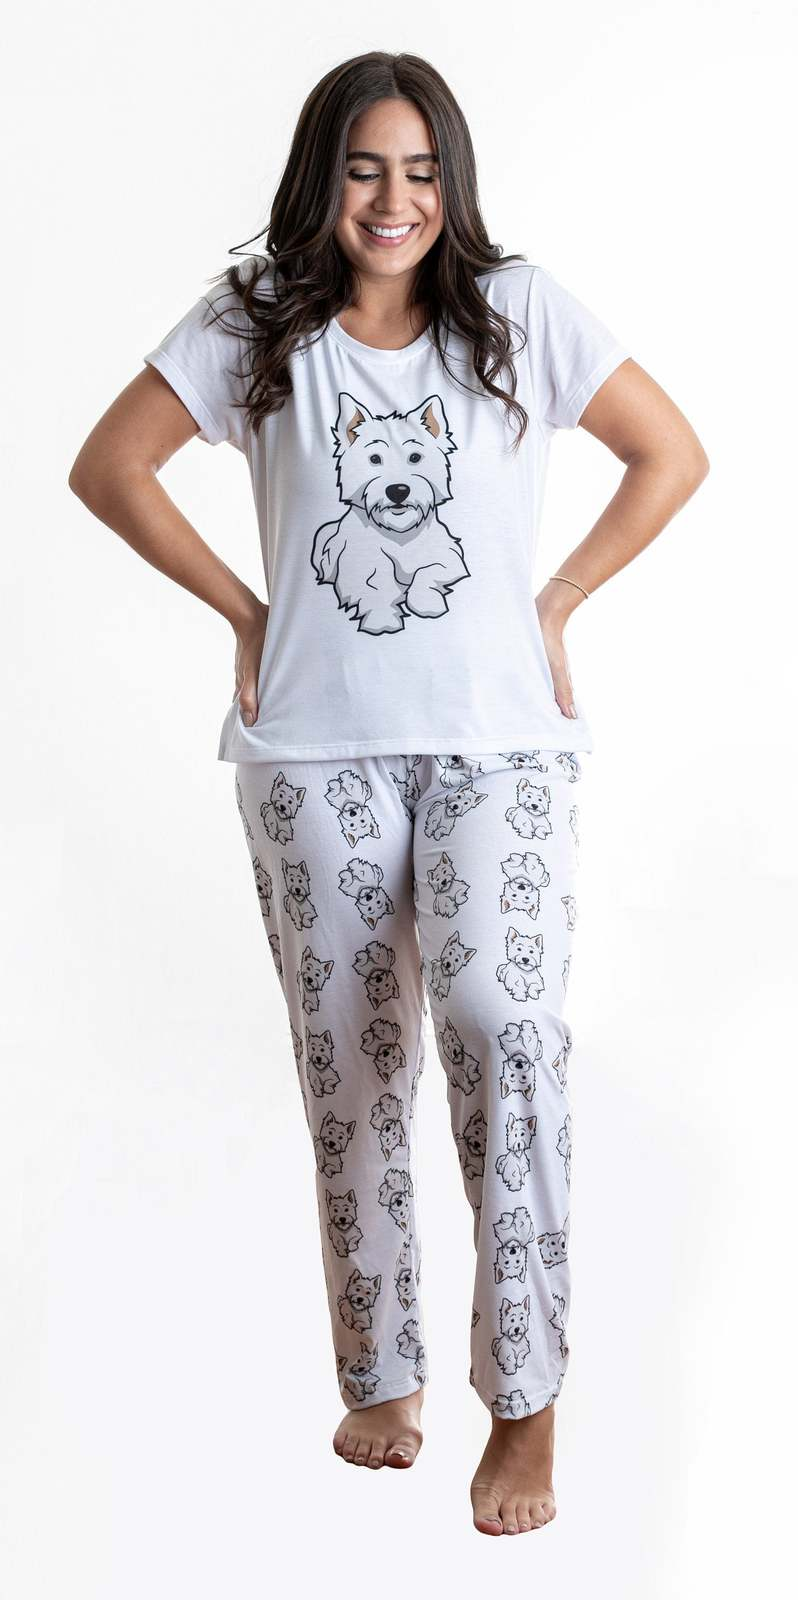 Primary image for Dog Westie pajama set with pants for women Westhighland